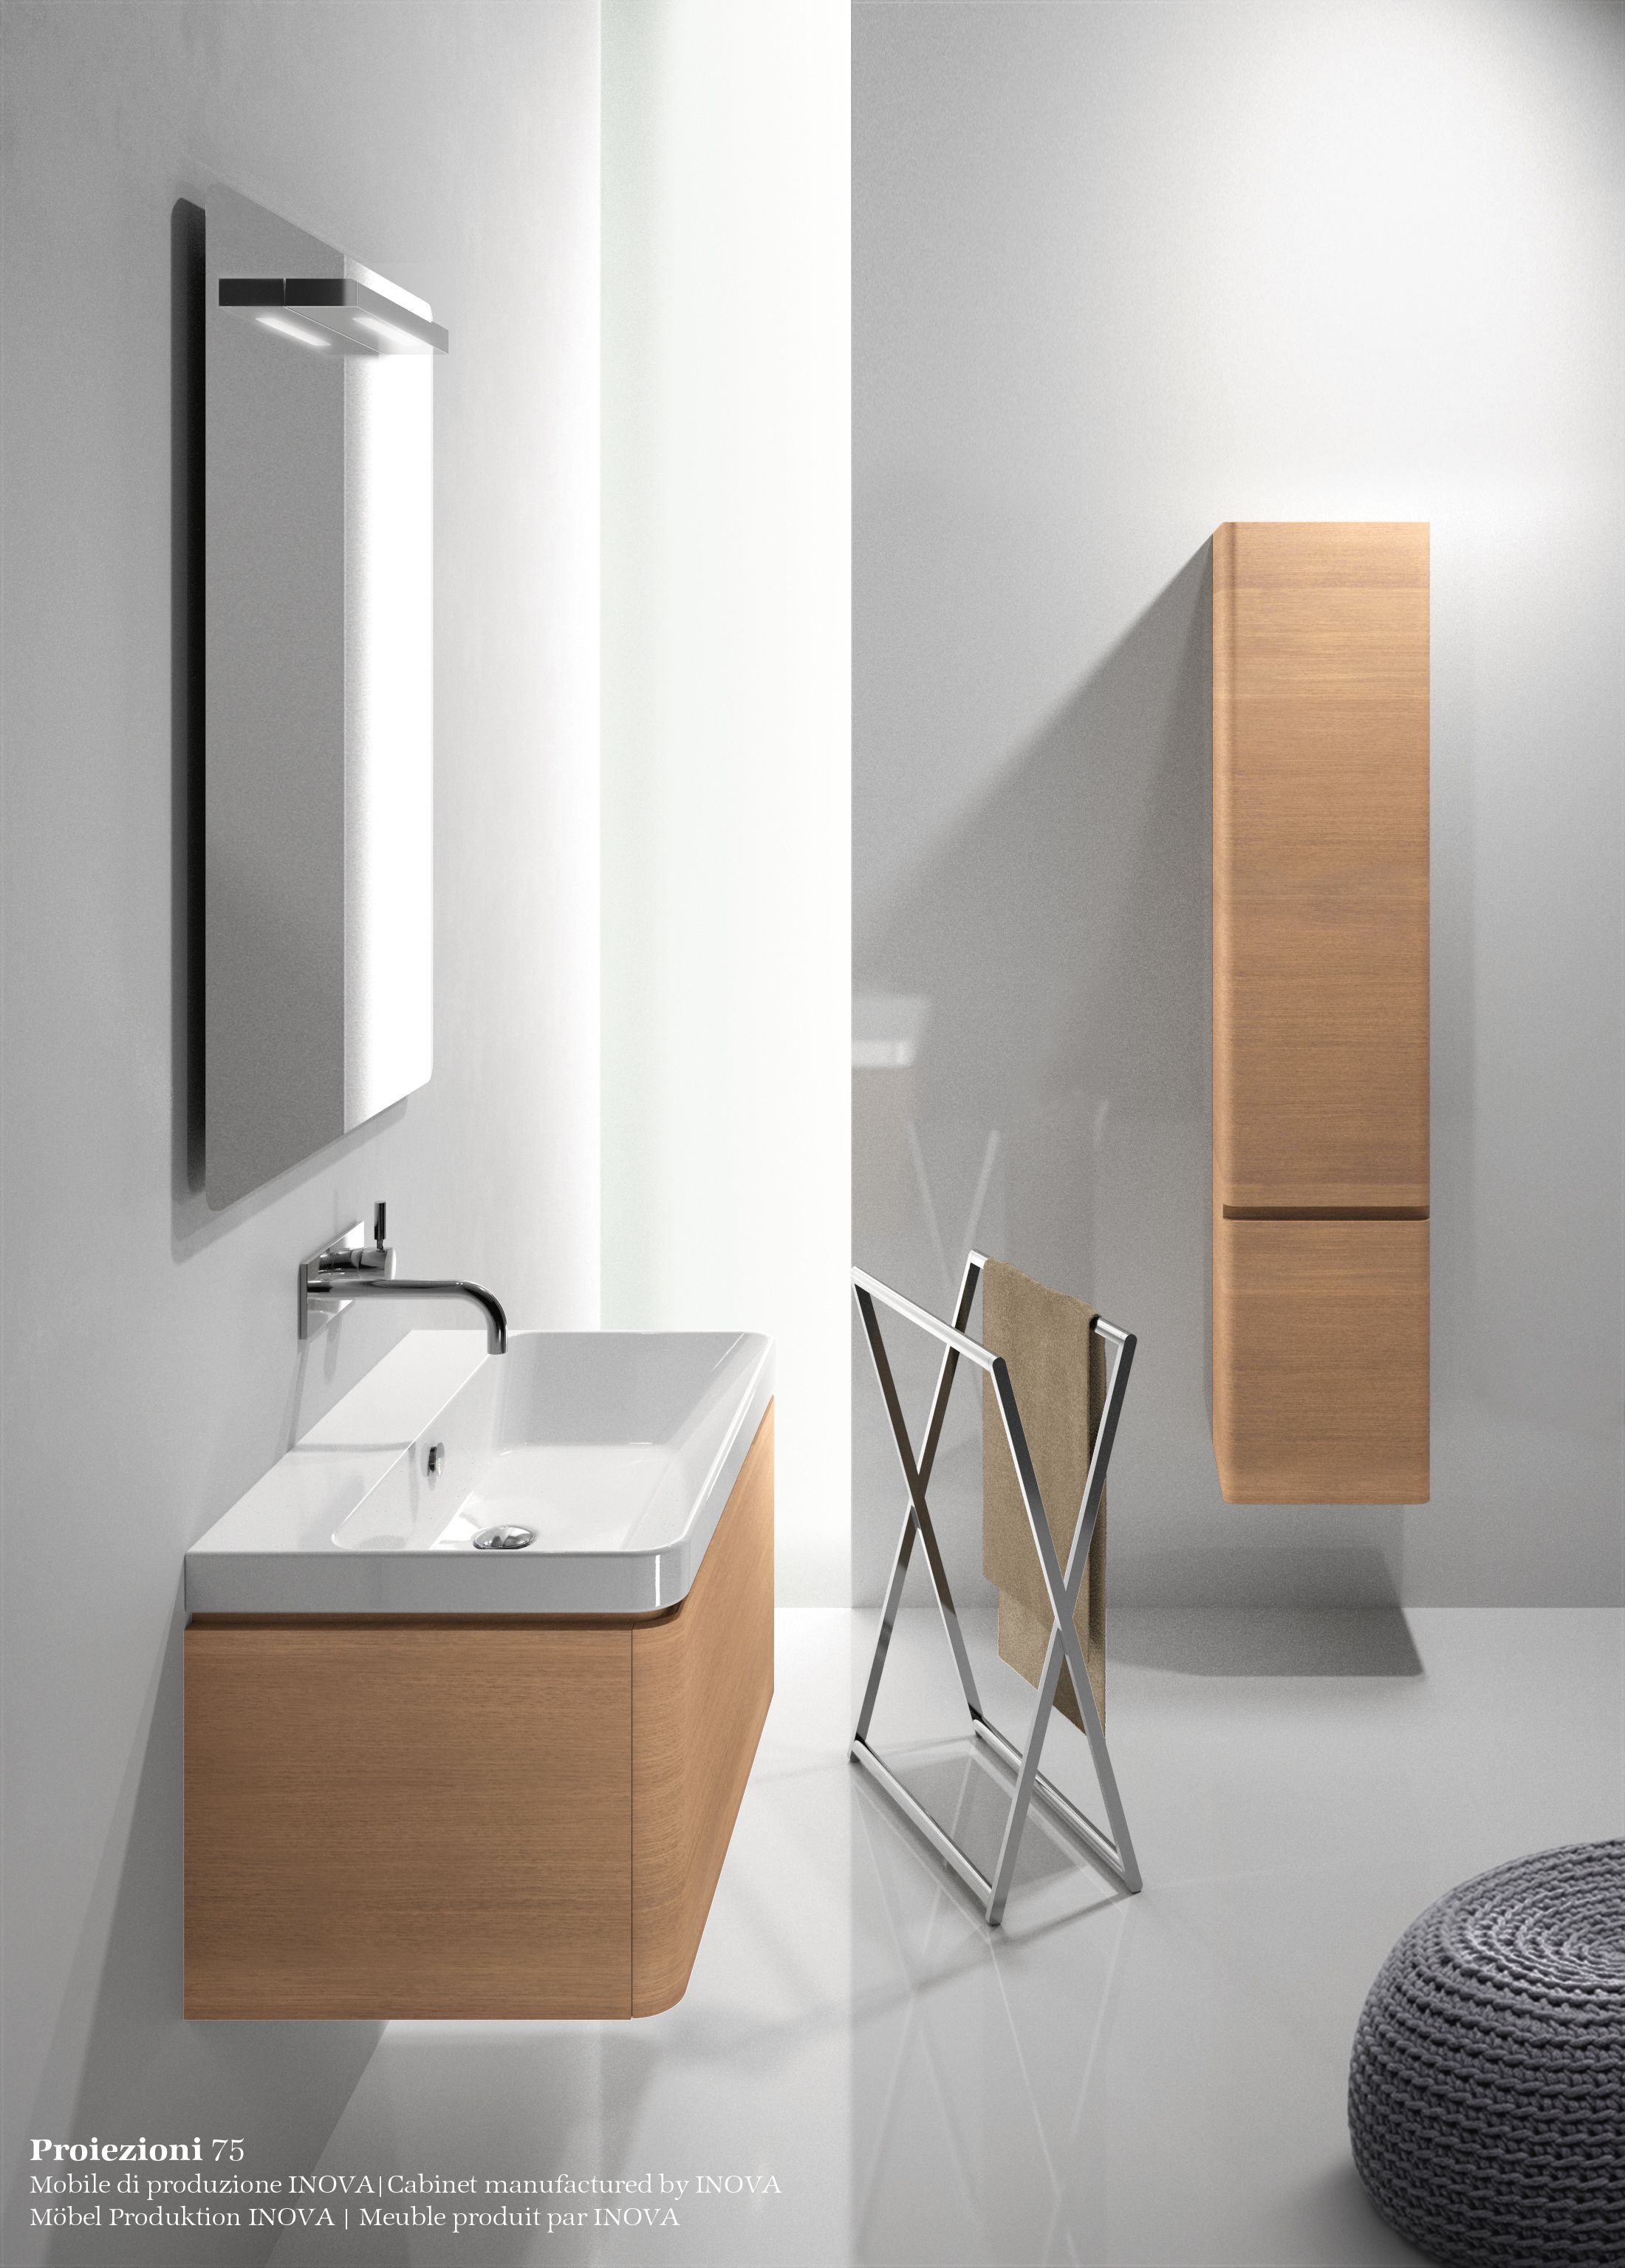 Inova Küchen Semi Inset Wall Mounted Ceramic Washbasin Proiezioni 75 By